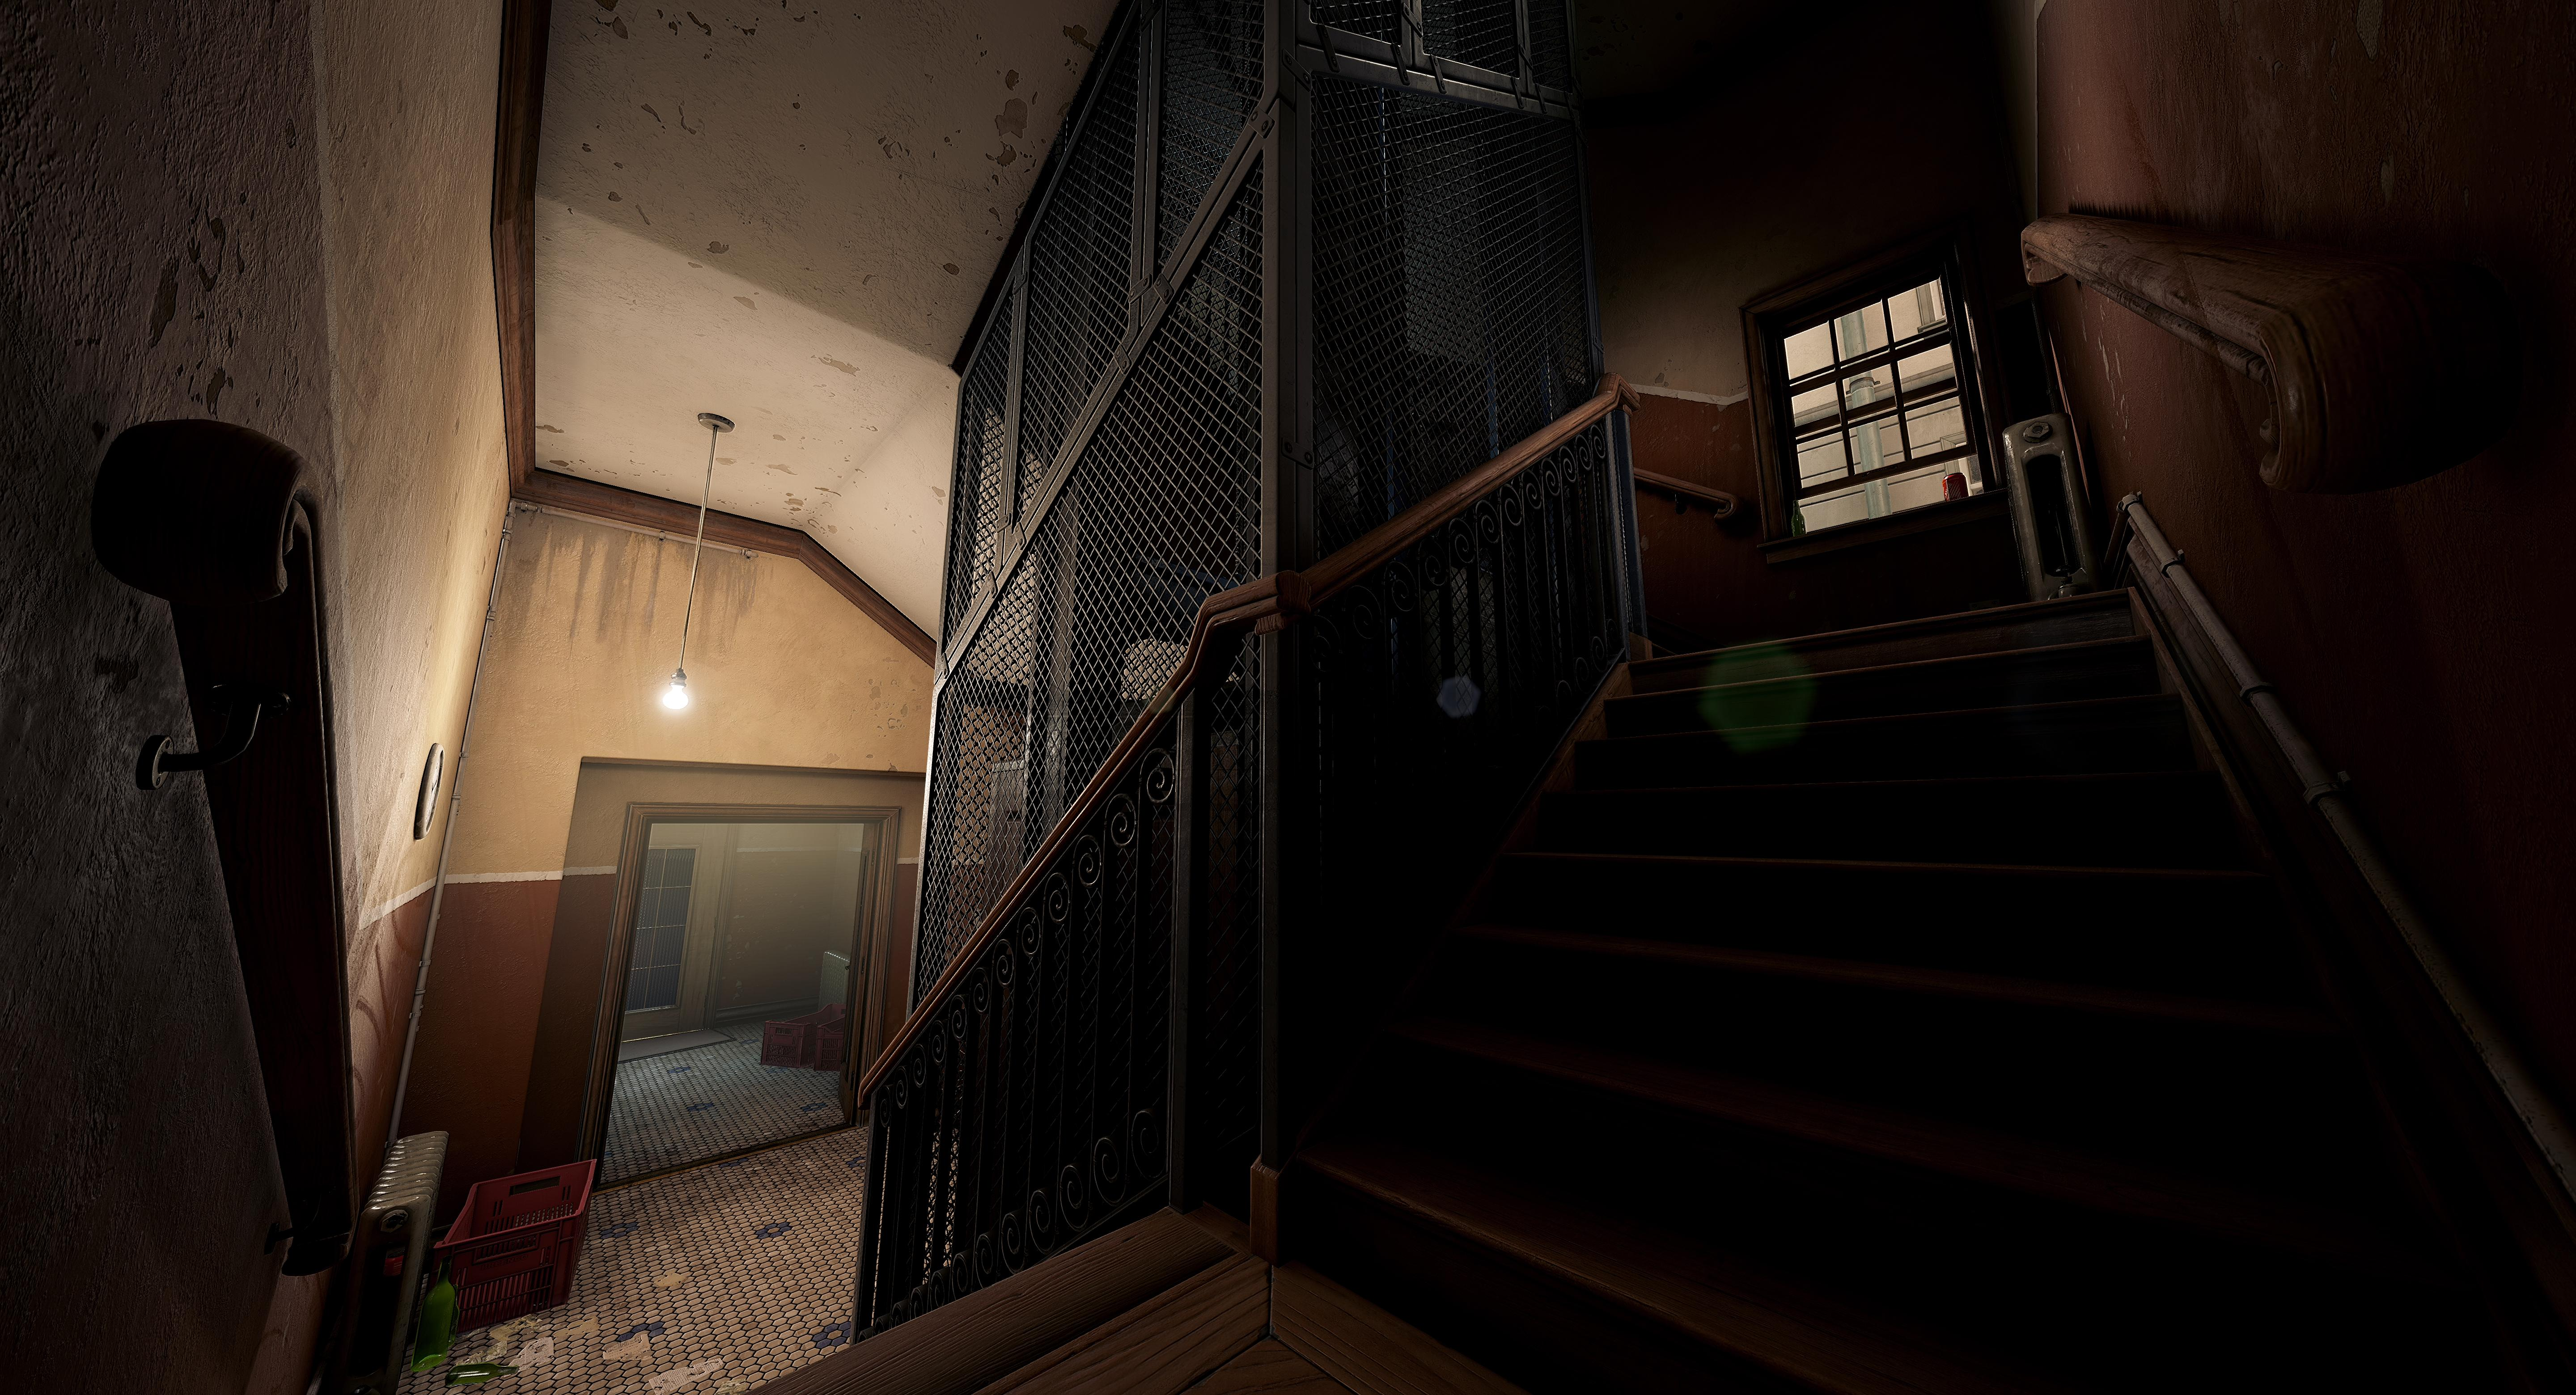 Half-Life 2 City 17 Playable Zone Remade in Unreal Engine Looks